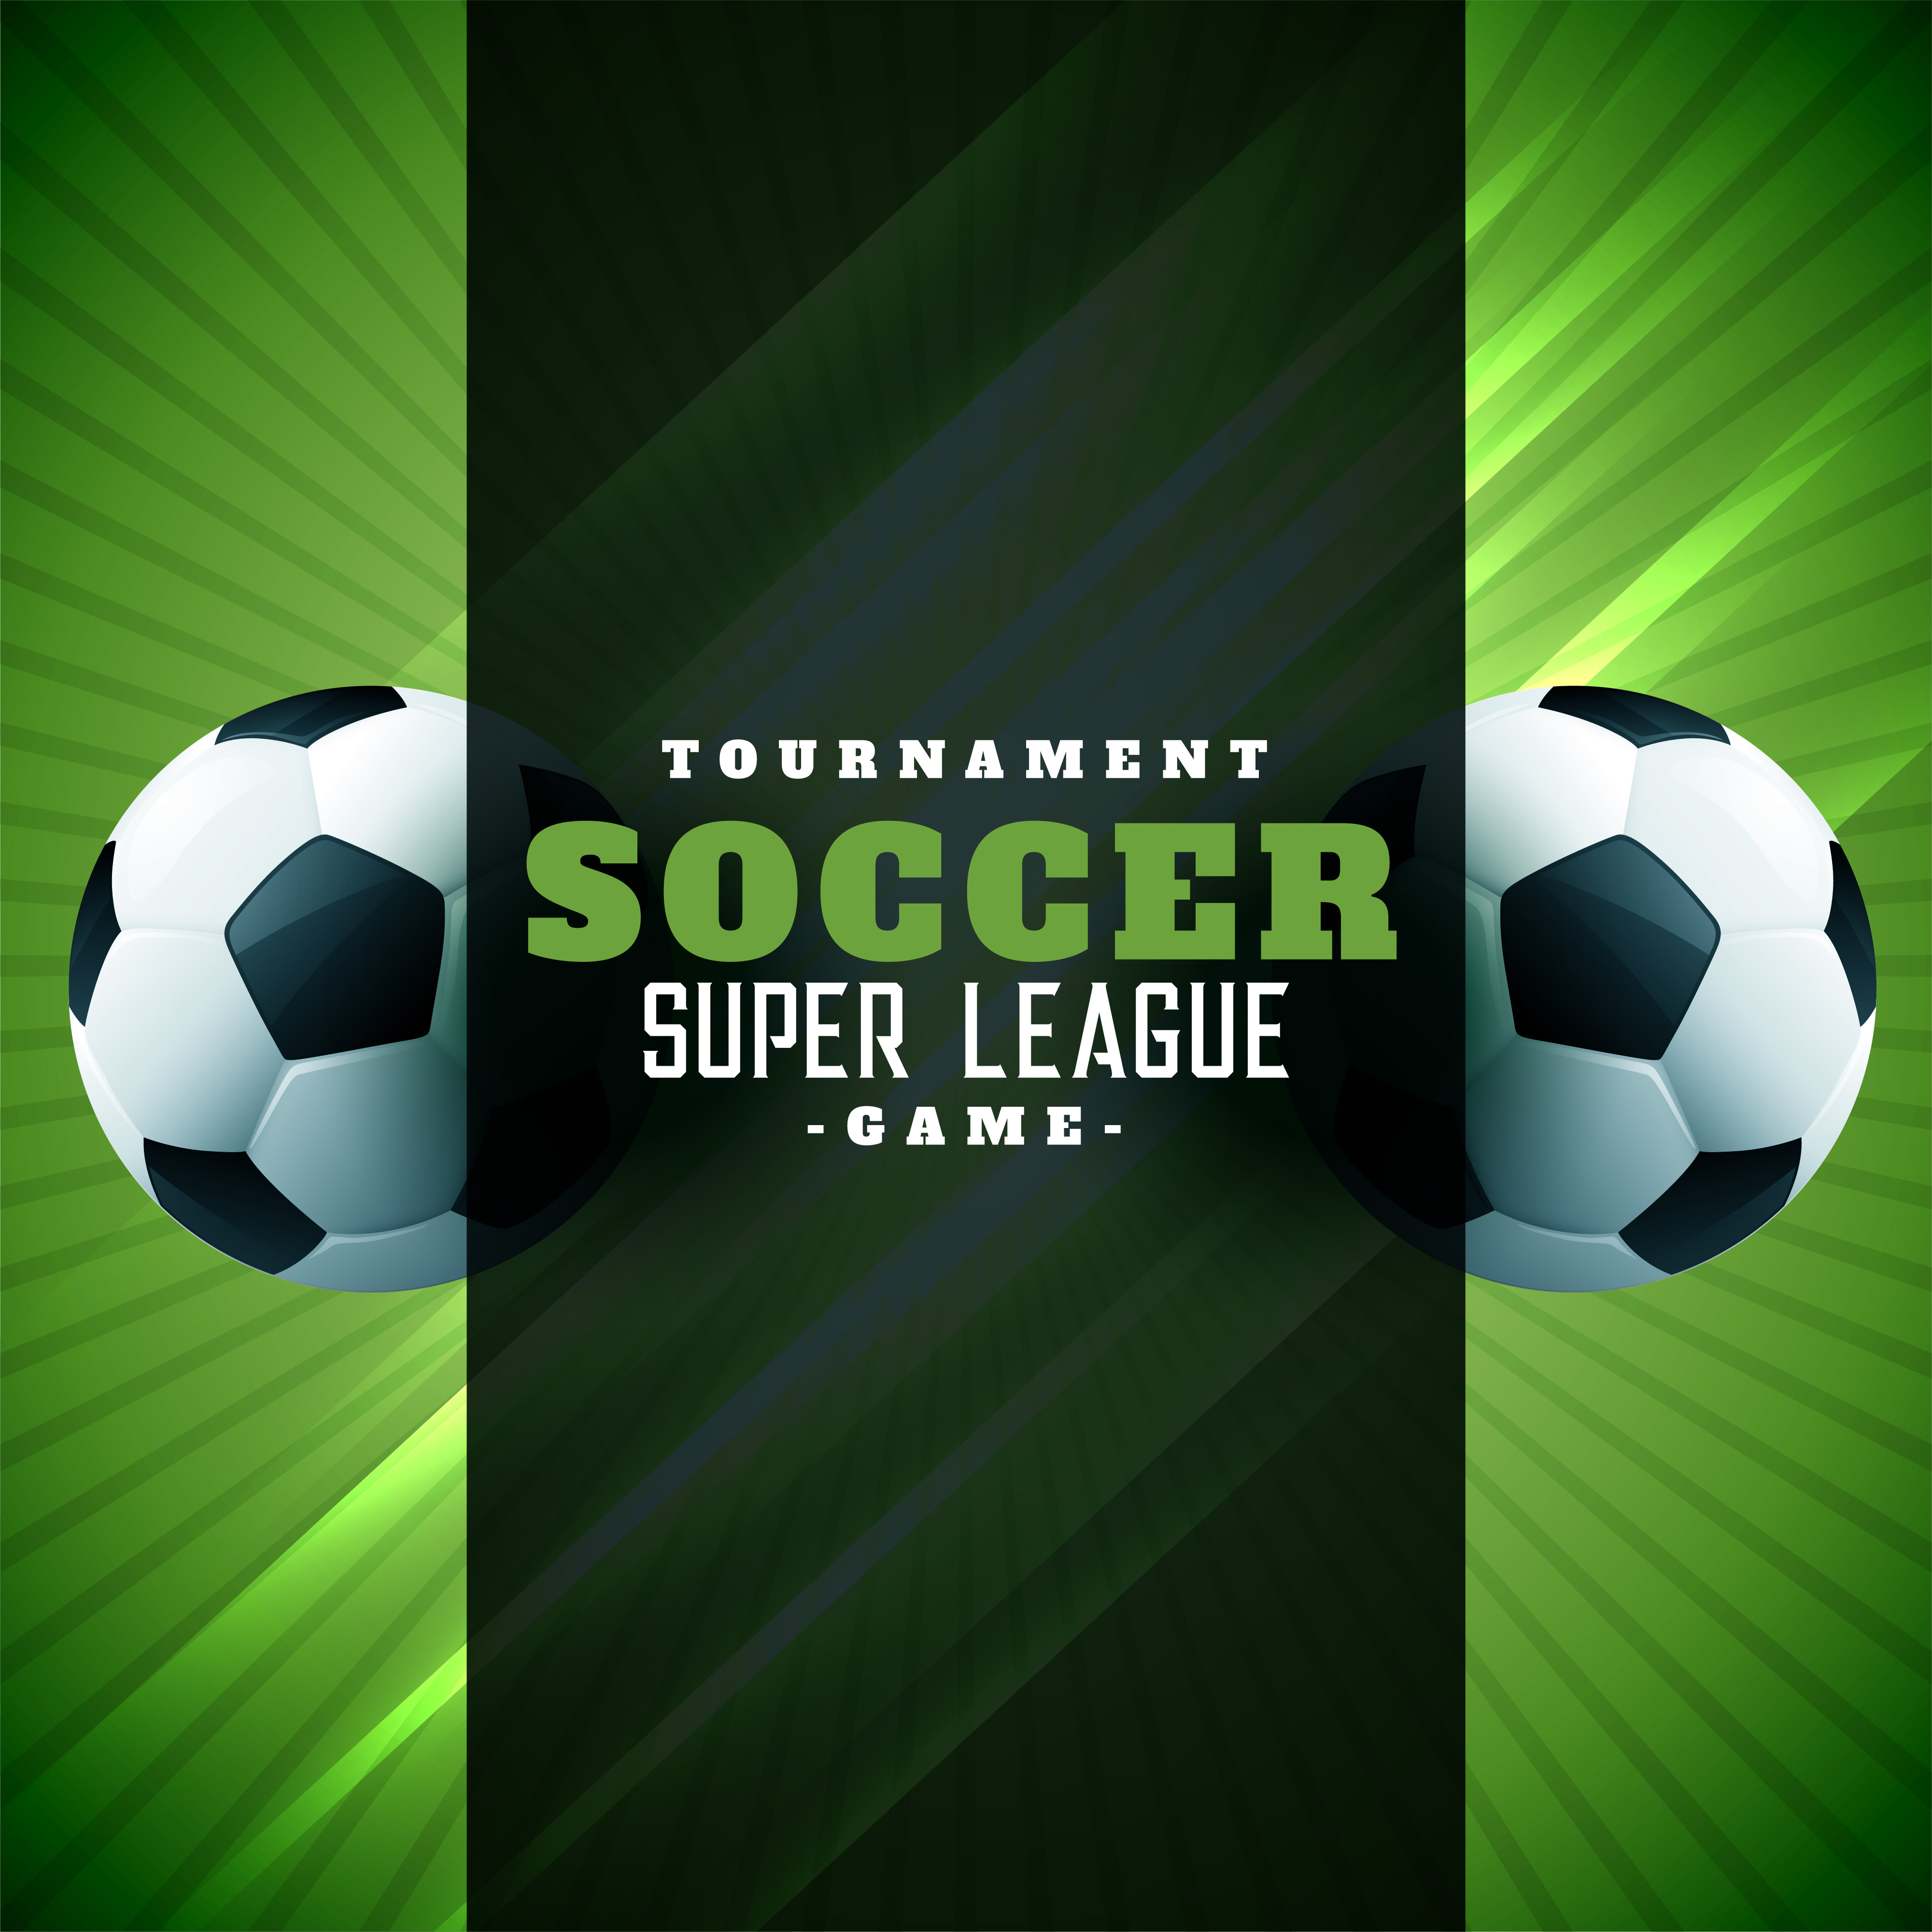 Football Poster Design Green Background Download Free